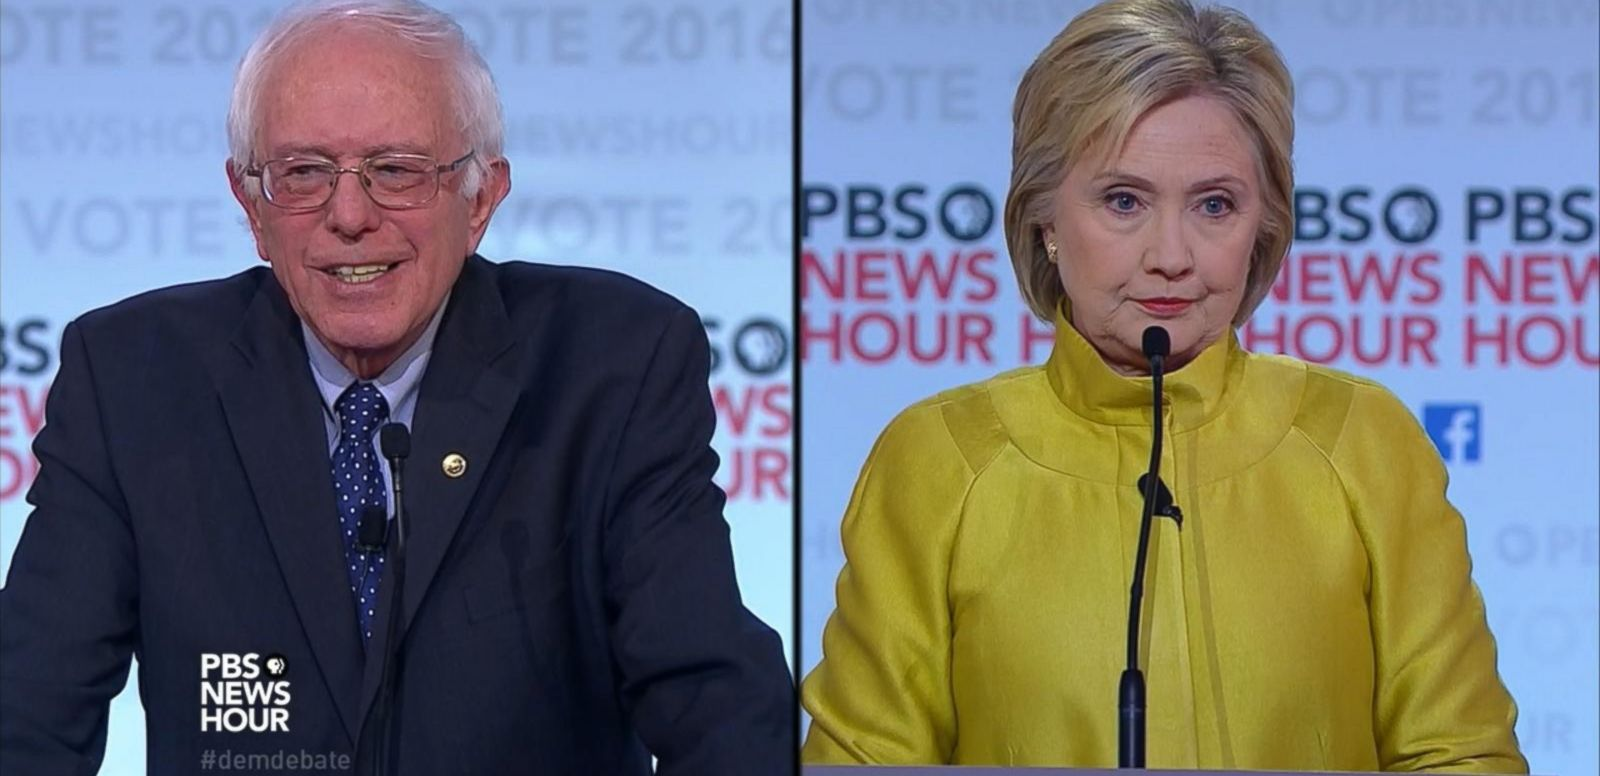 VIDEO: Democratic Debate Strategy for Hillary Clinton and Bernie Sanders